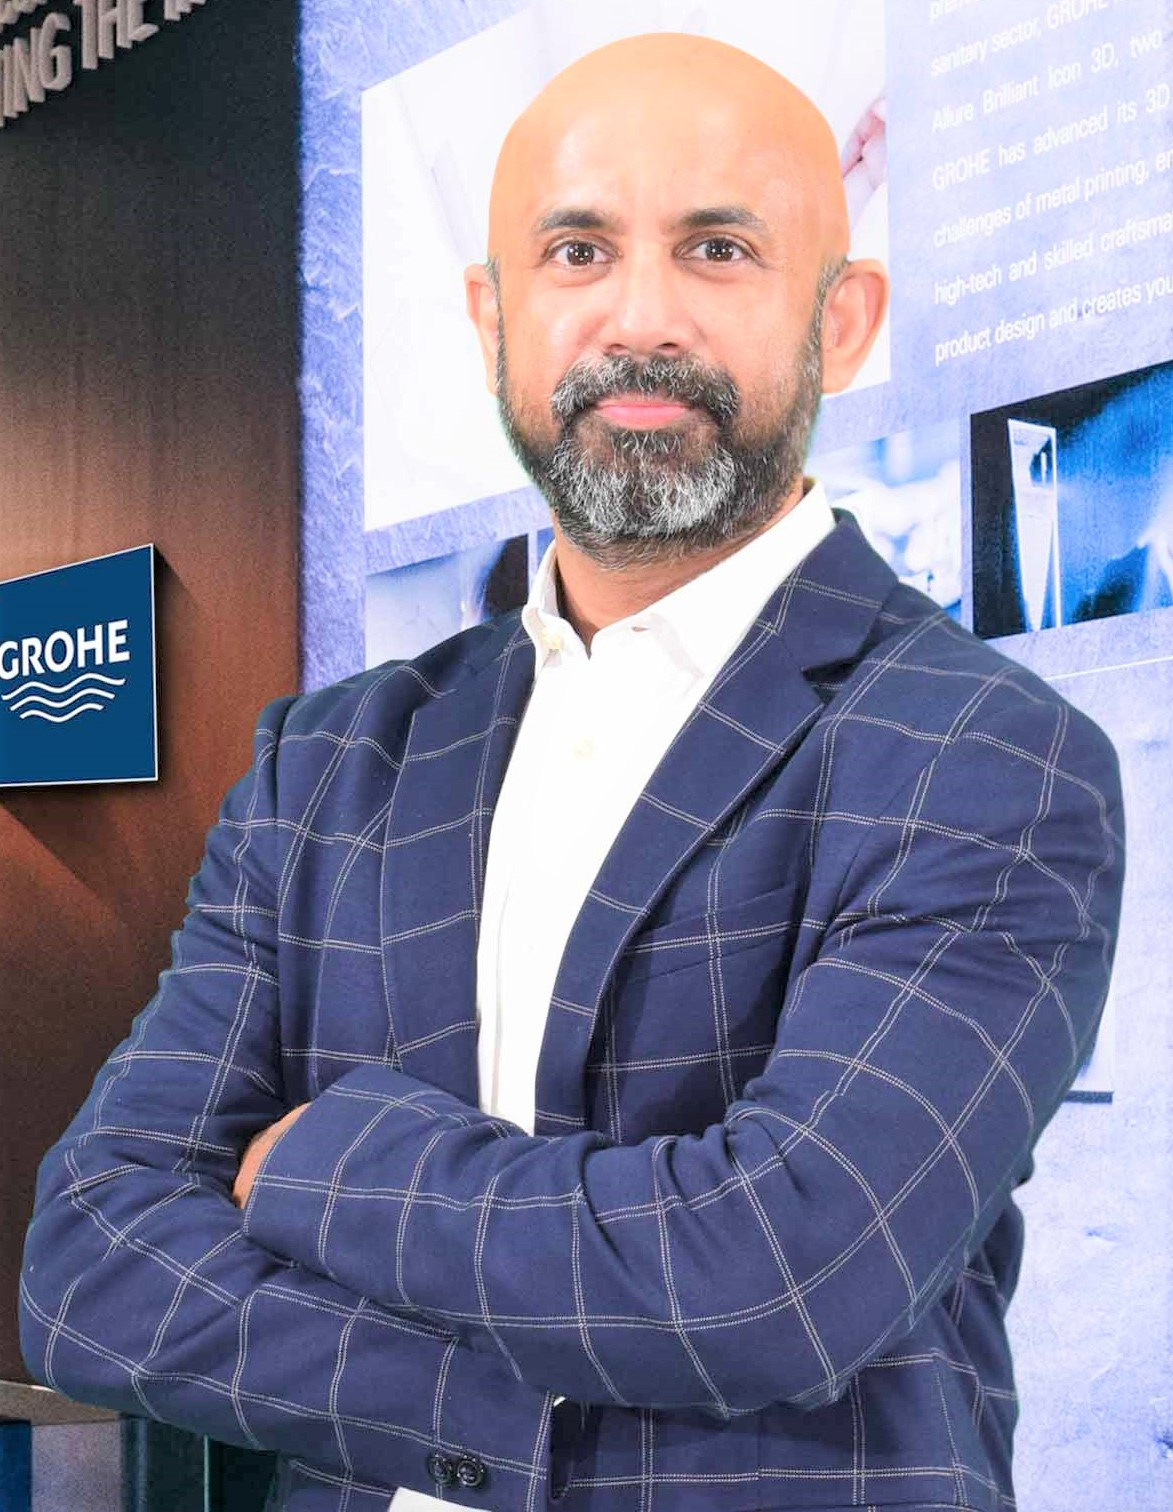 Grohe & American Standard bring Innovation